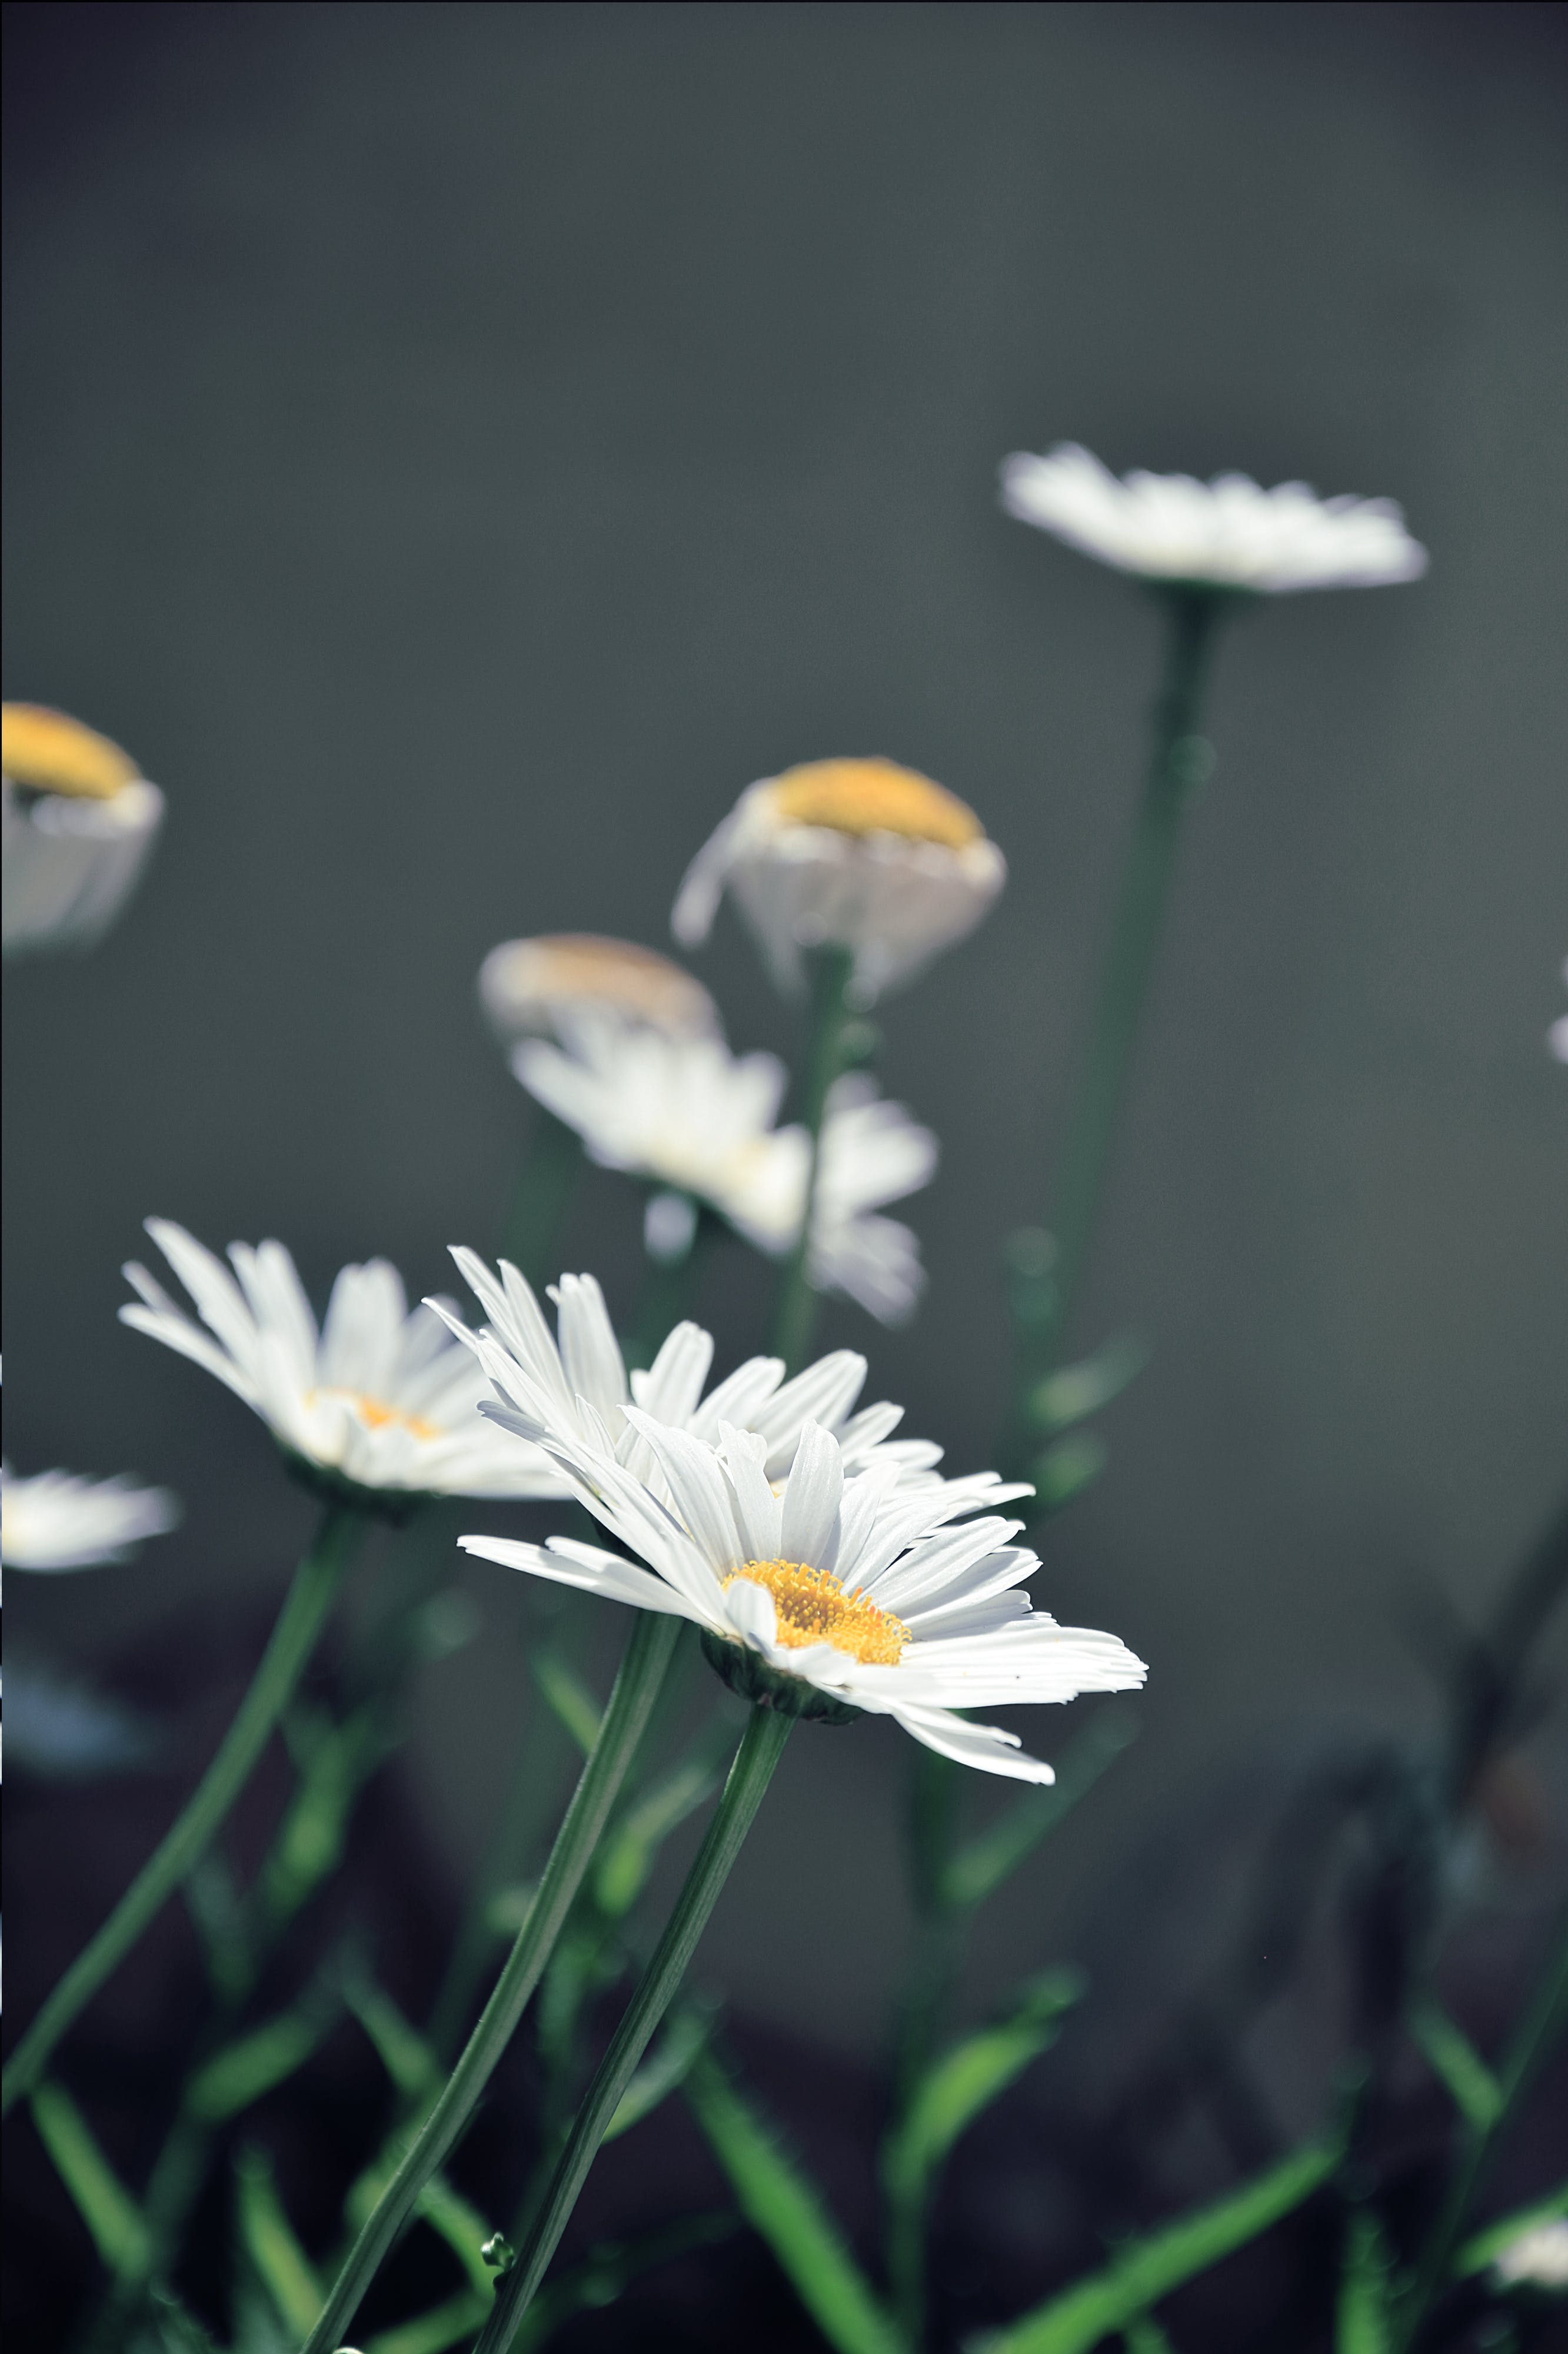 Close-up Photography of White Daisy Flowers